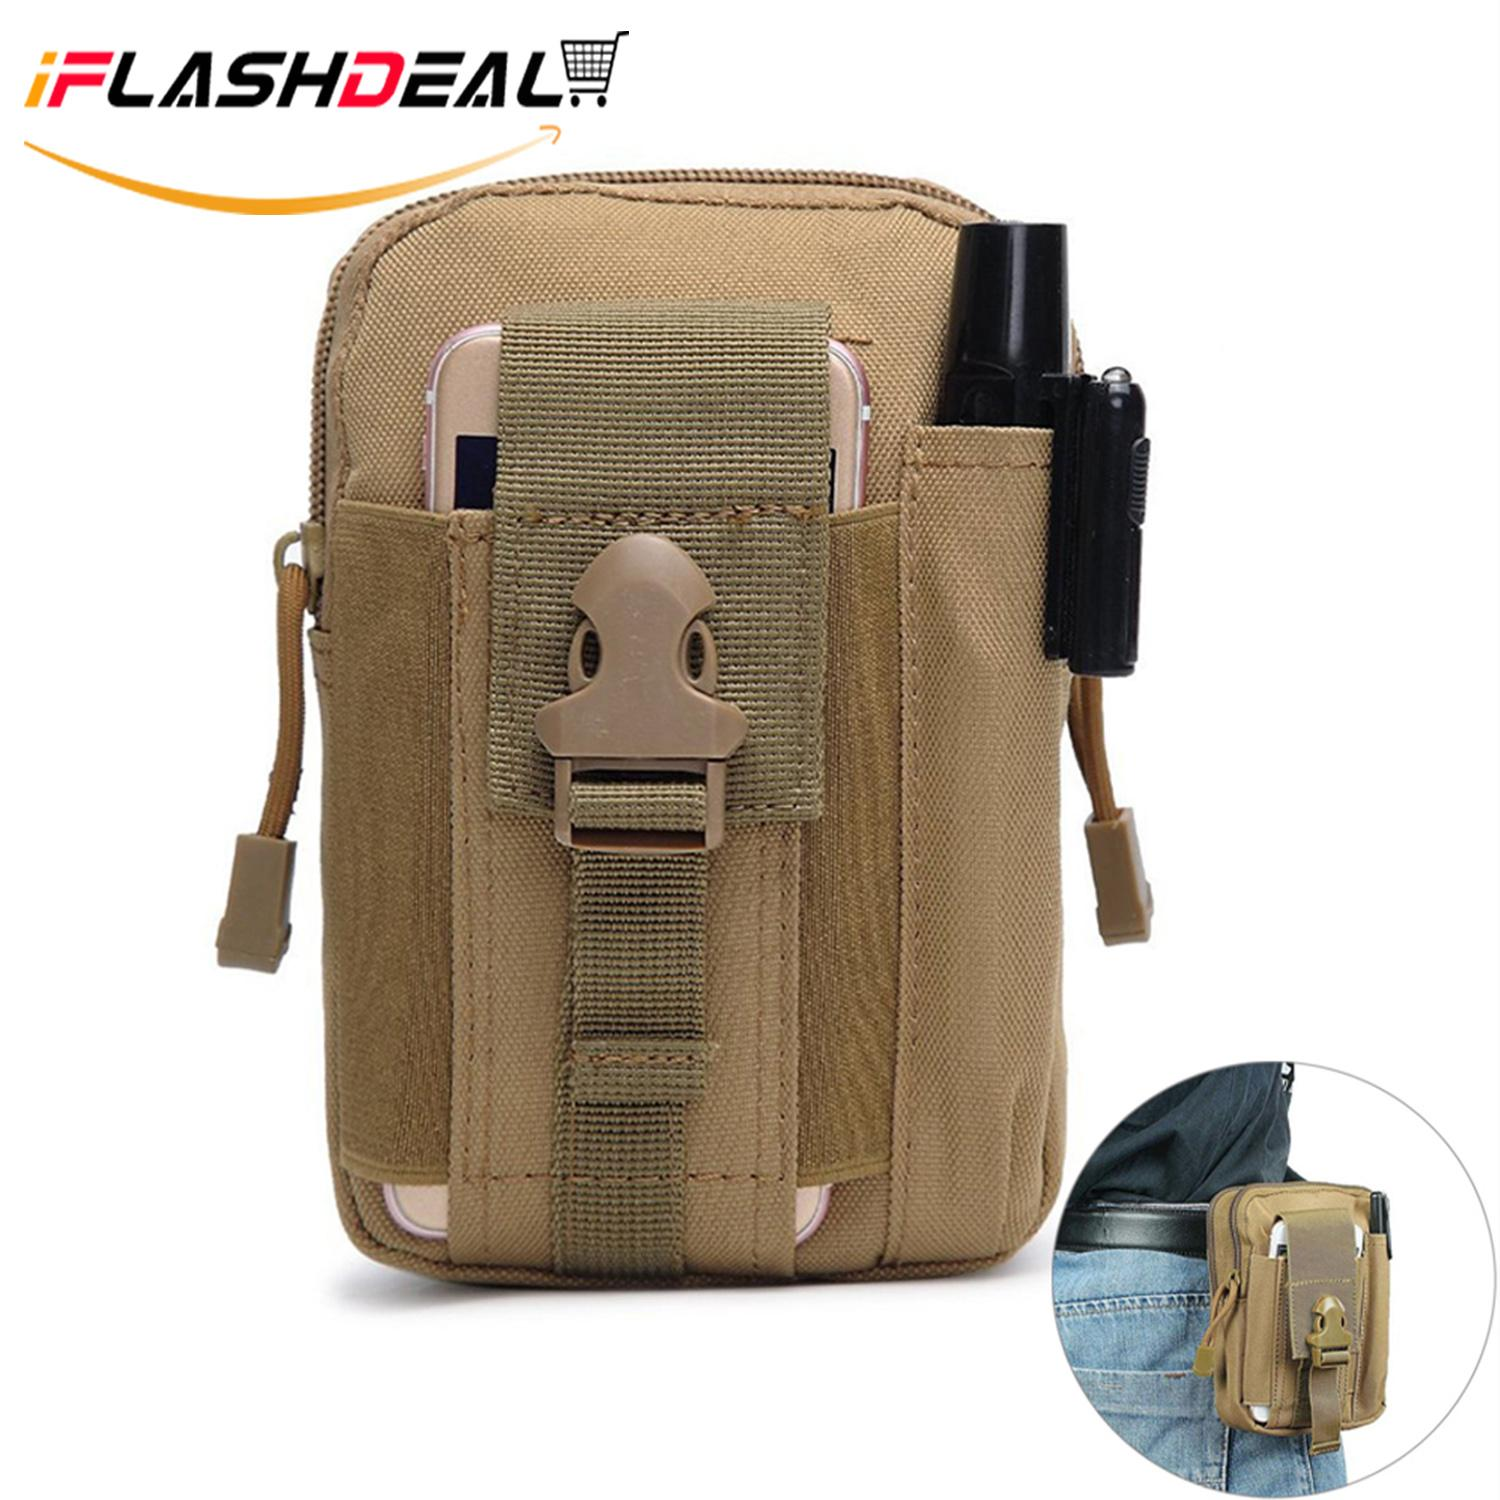 fcae71785b9f iFlashDeal Tactical Molle Pouch Compact EDC Utility Gadget Belt Waist Bag  Pack Pocket Organizer with Cell